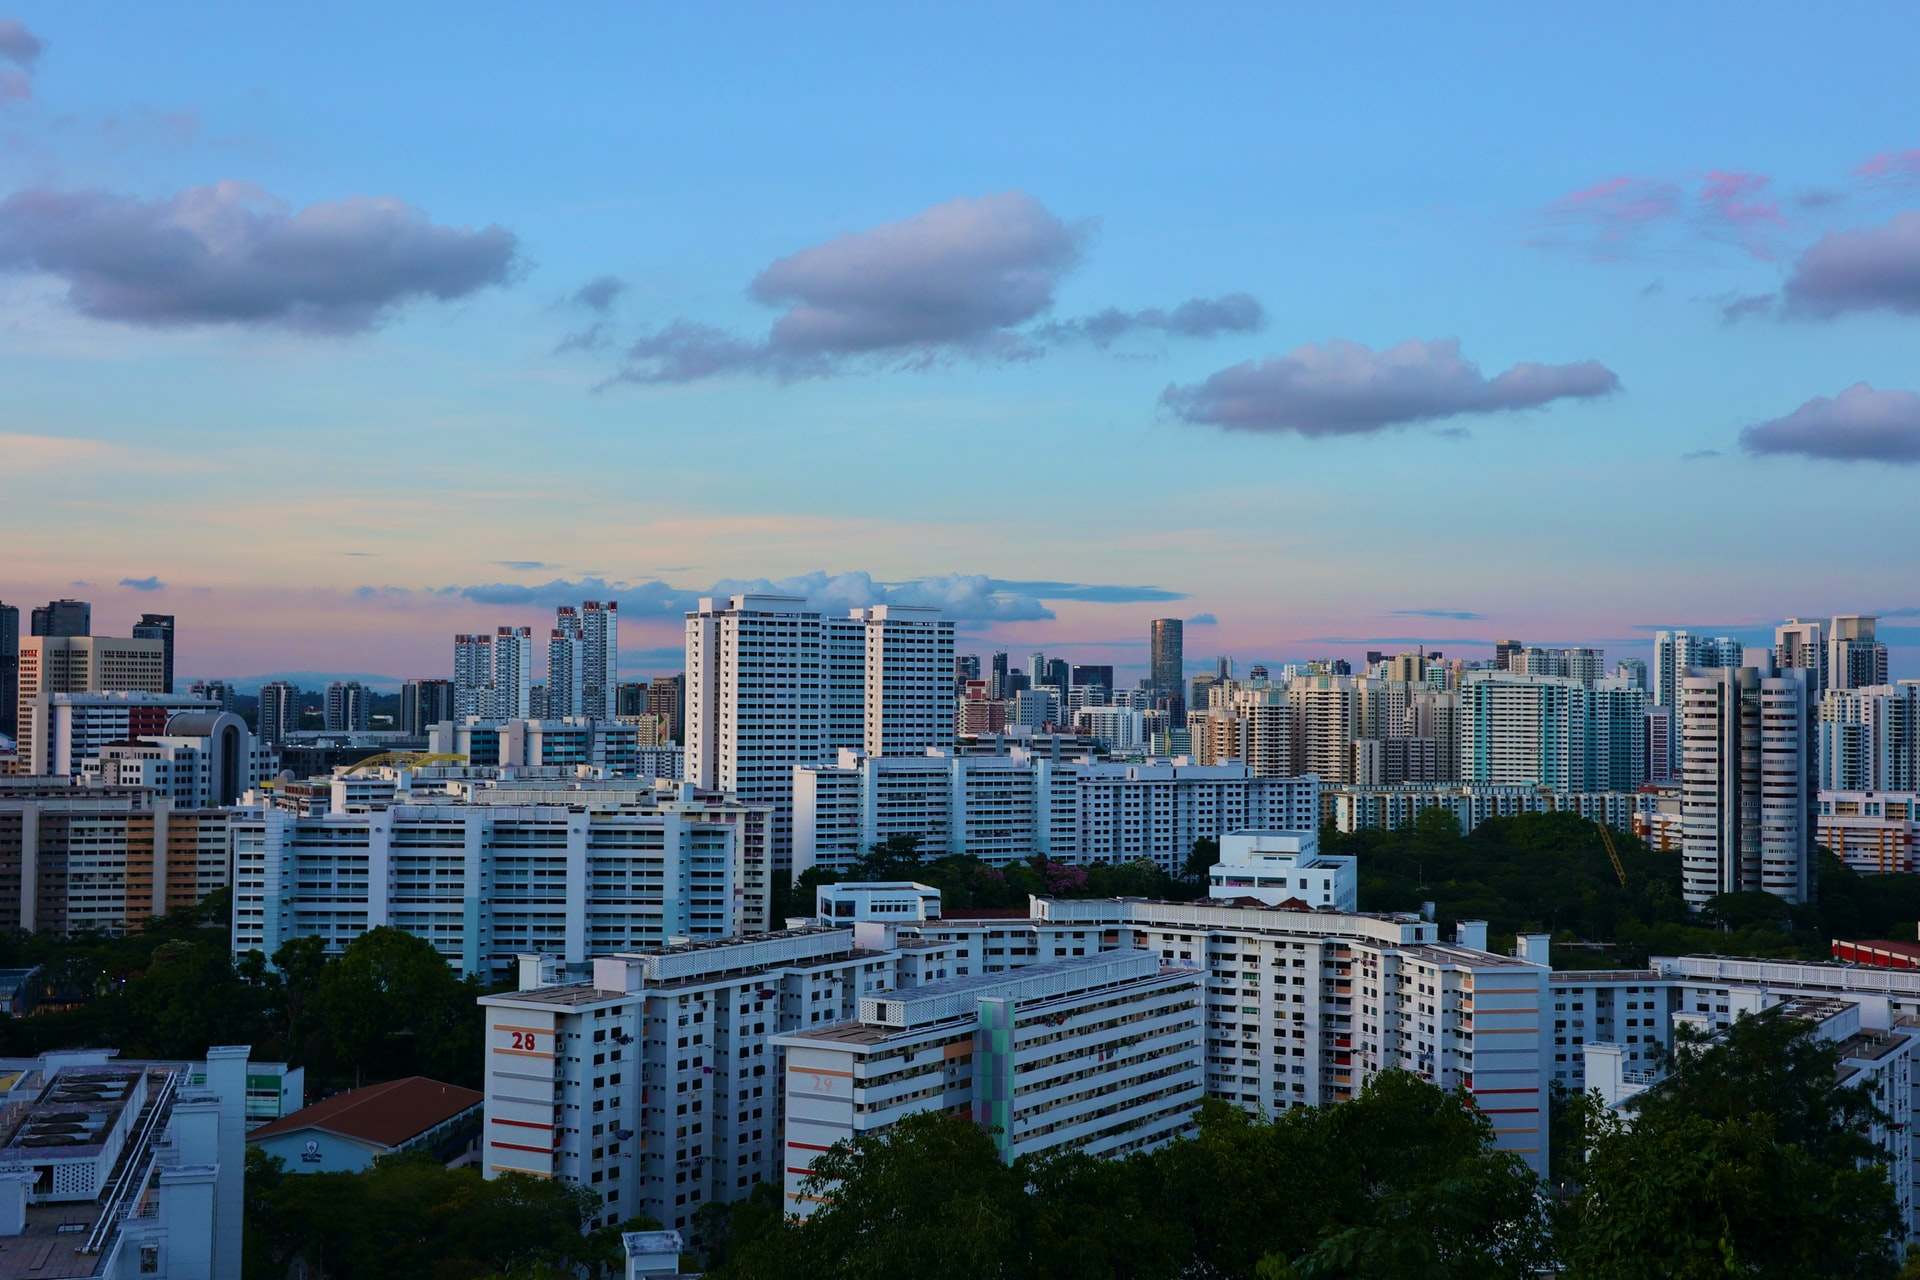 HDB and condos in Singapore